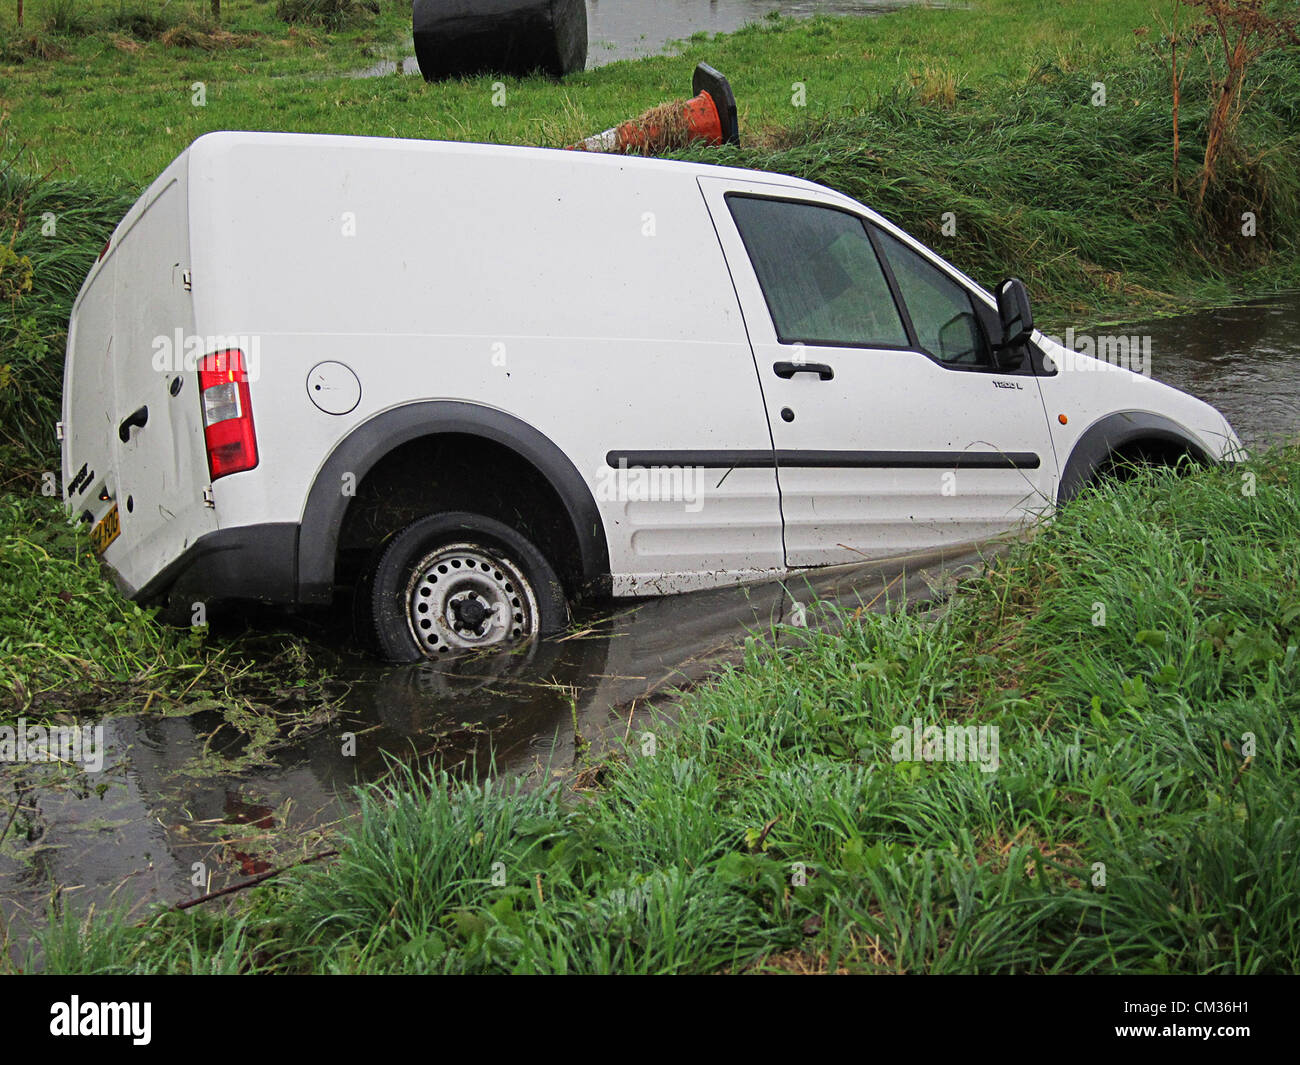 Badgworth, Somerset, UK. 24th September, 2012. A small van in a ditch on the A38 in Somerset, near Badgworth (junction - Stock Image